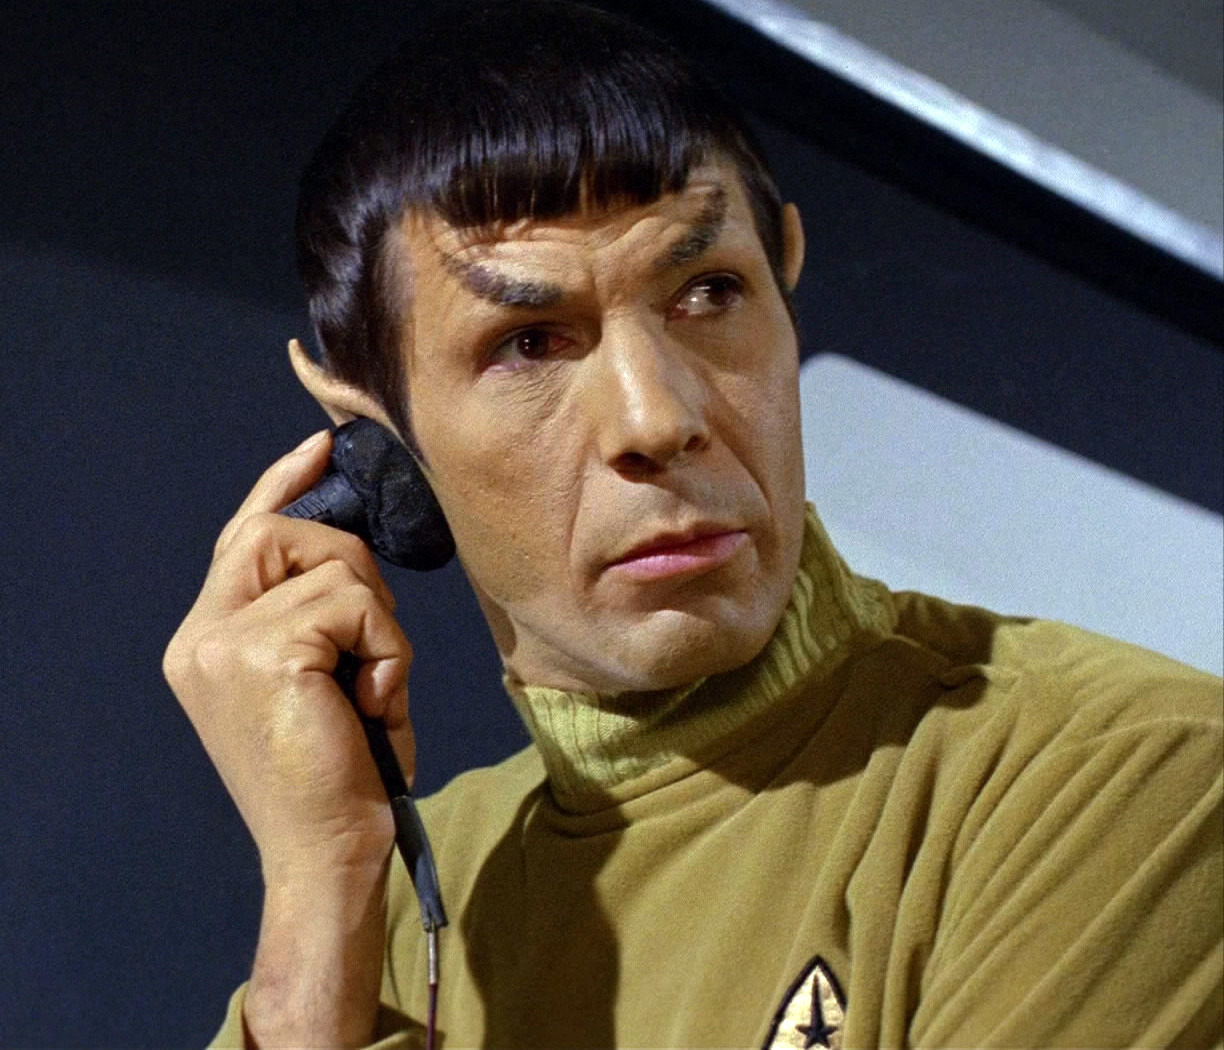 Spock_with_earpiece.jpg